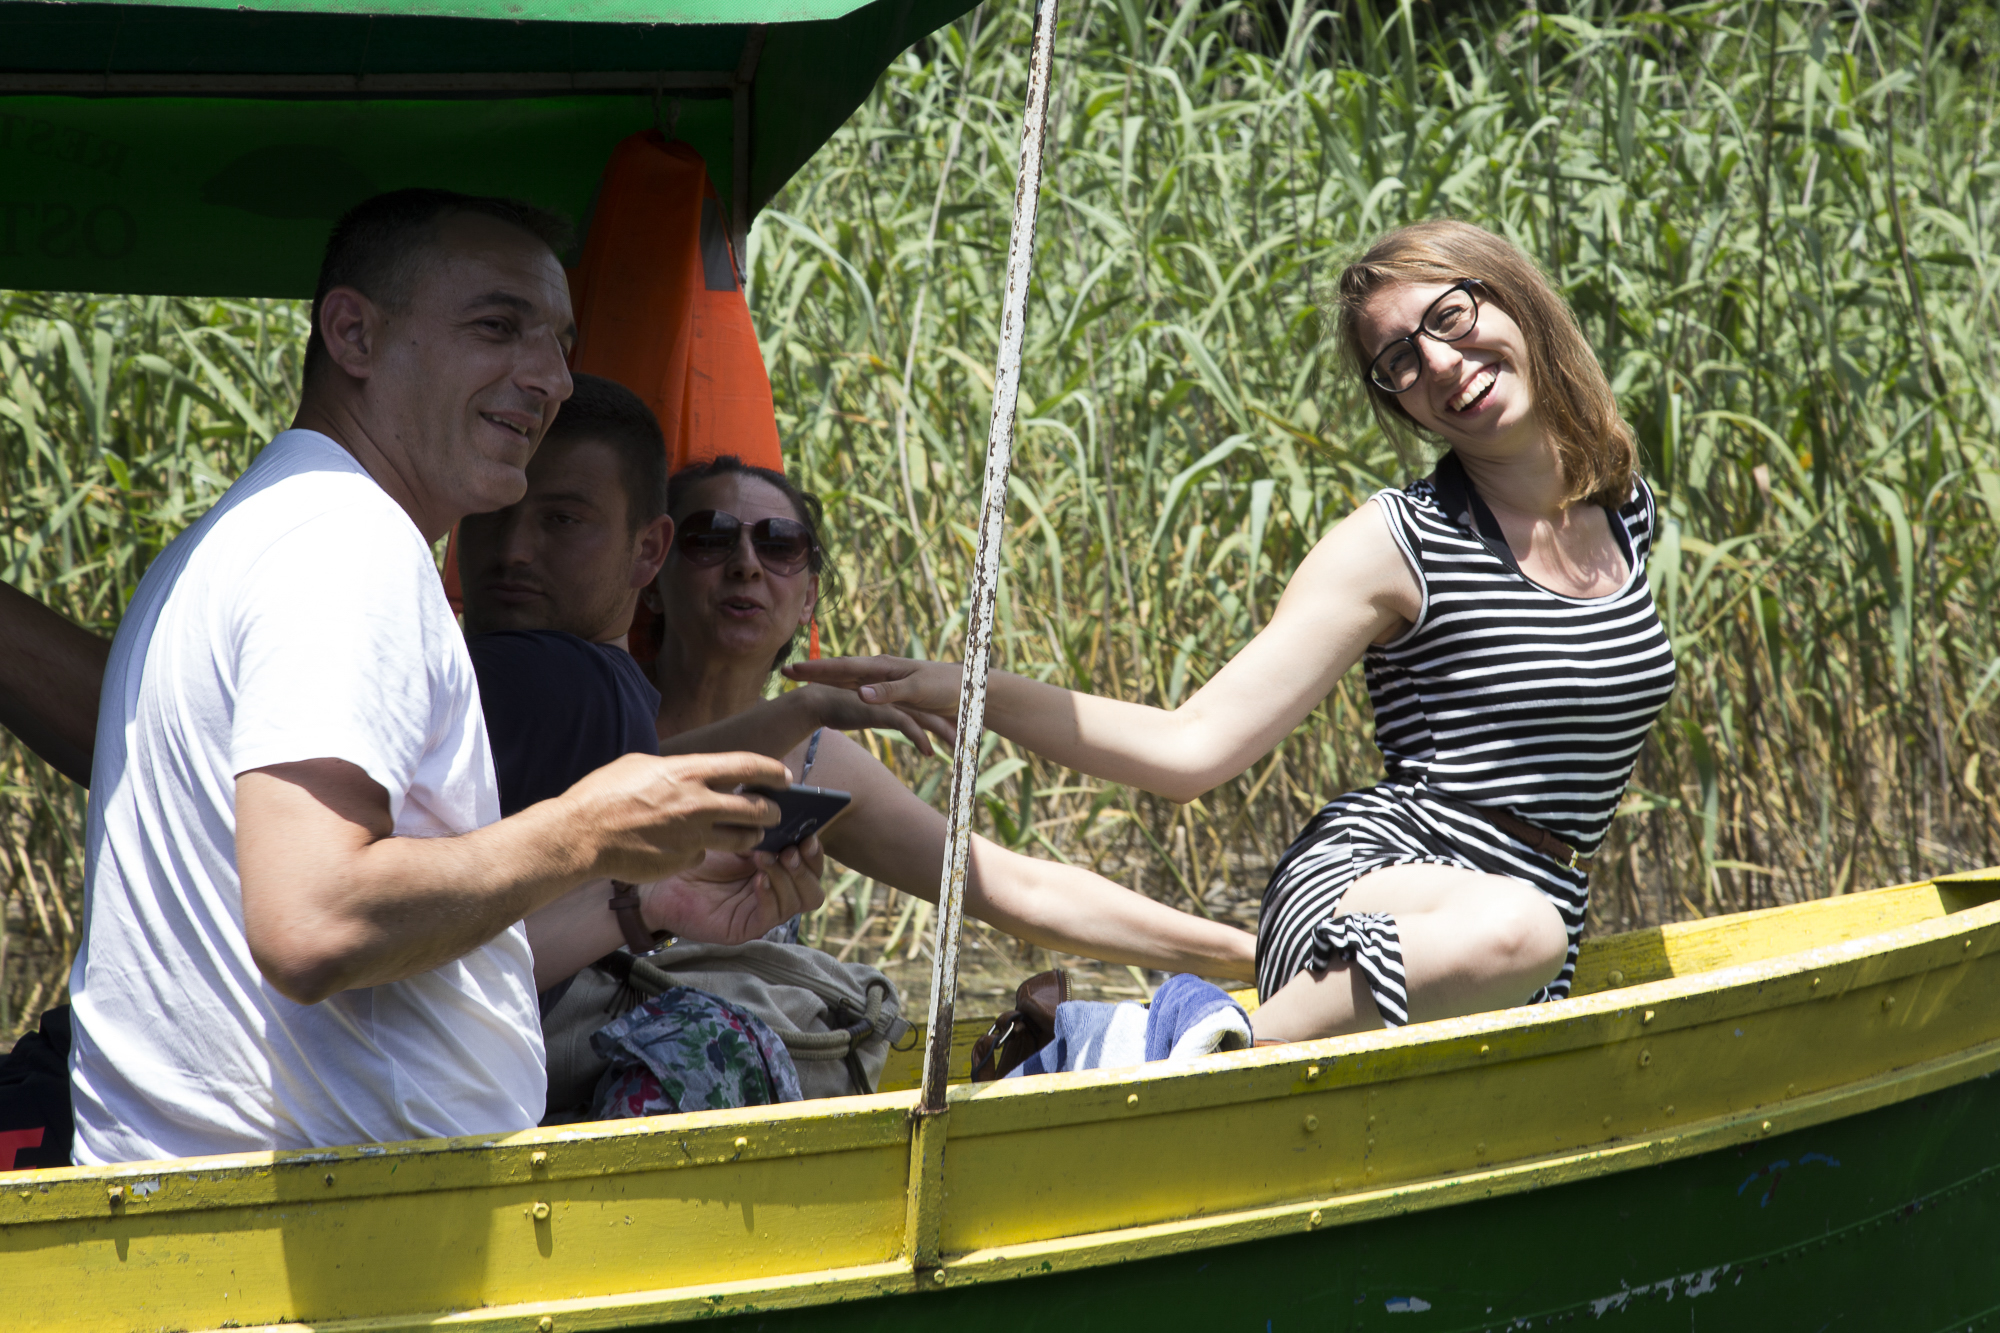 Students on a boat